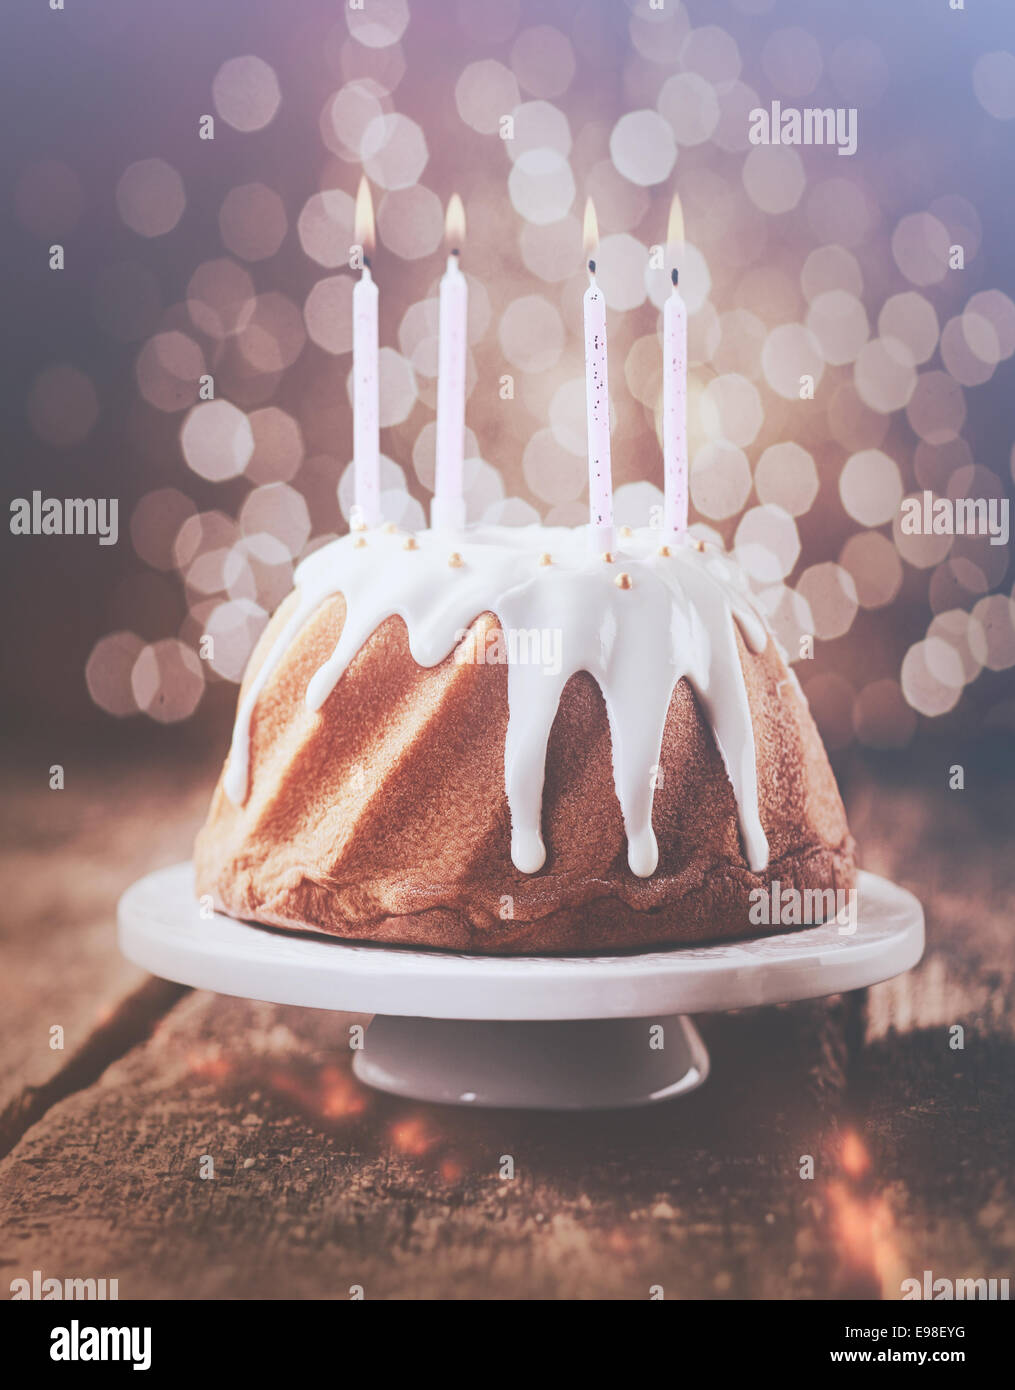 Retro Vintage Effect Birthday Cake Glazed With Dripping White Icing Decorated Pearls And Topped Four Burning Party Candles A Background Bokeh